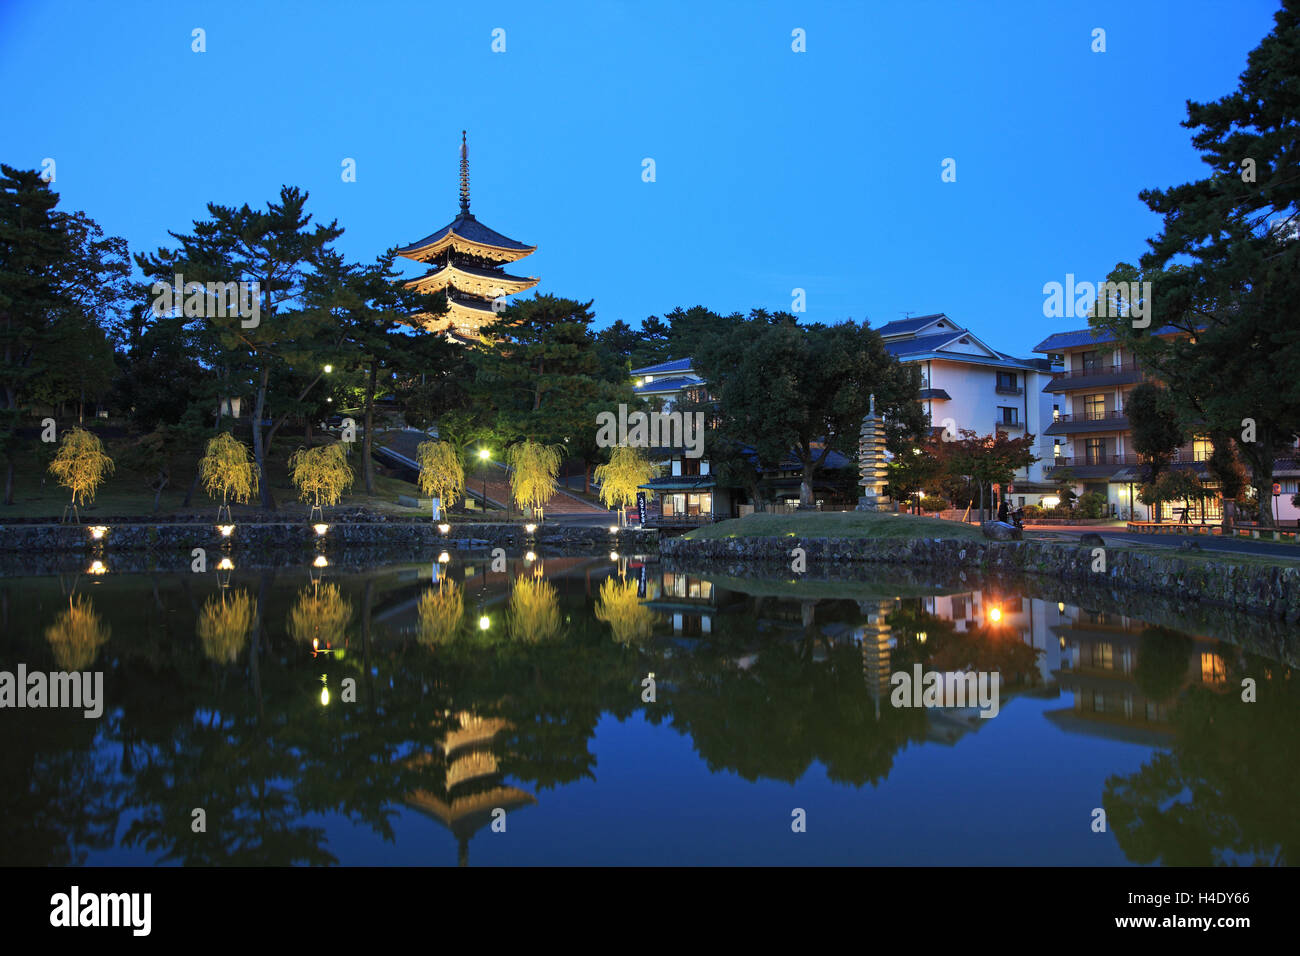 Japan, Nara, Kofukuji Temple, UNESCO World Heritage, view Pagoda Kofukuji Temple from Sarusawa Pond - Stock Image